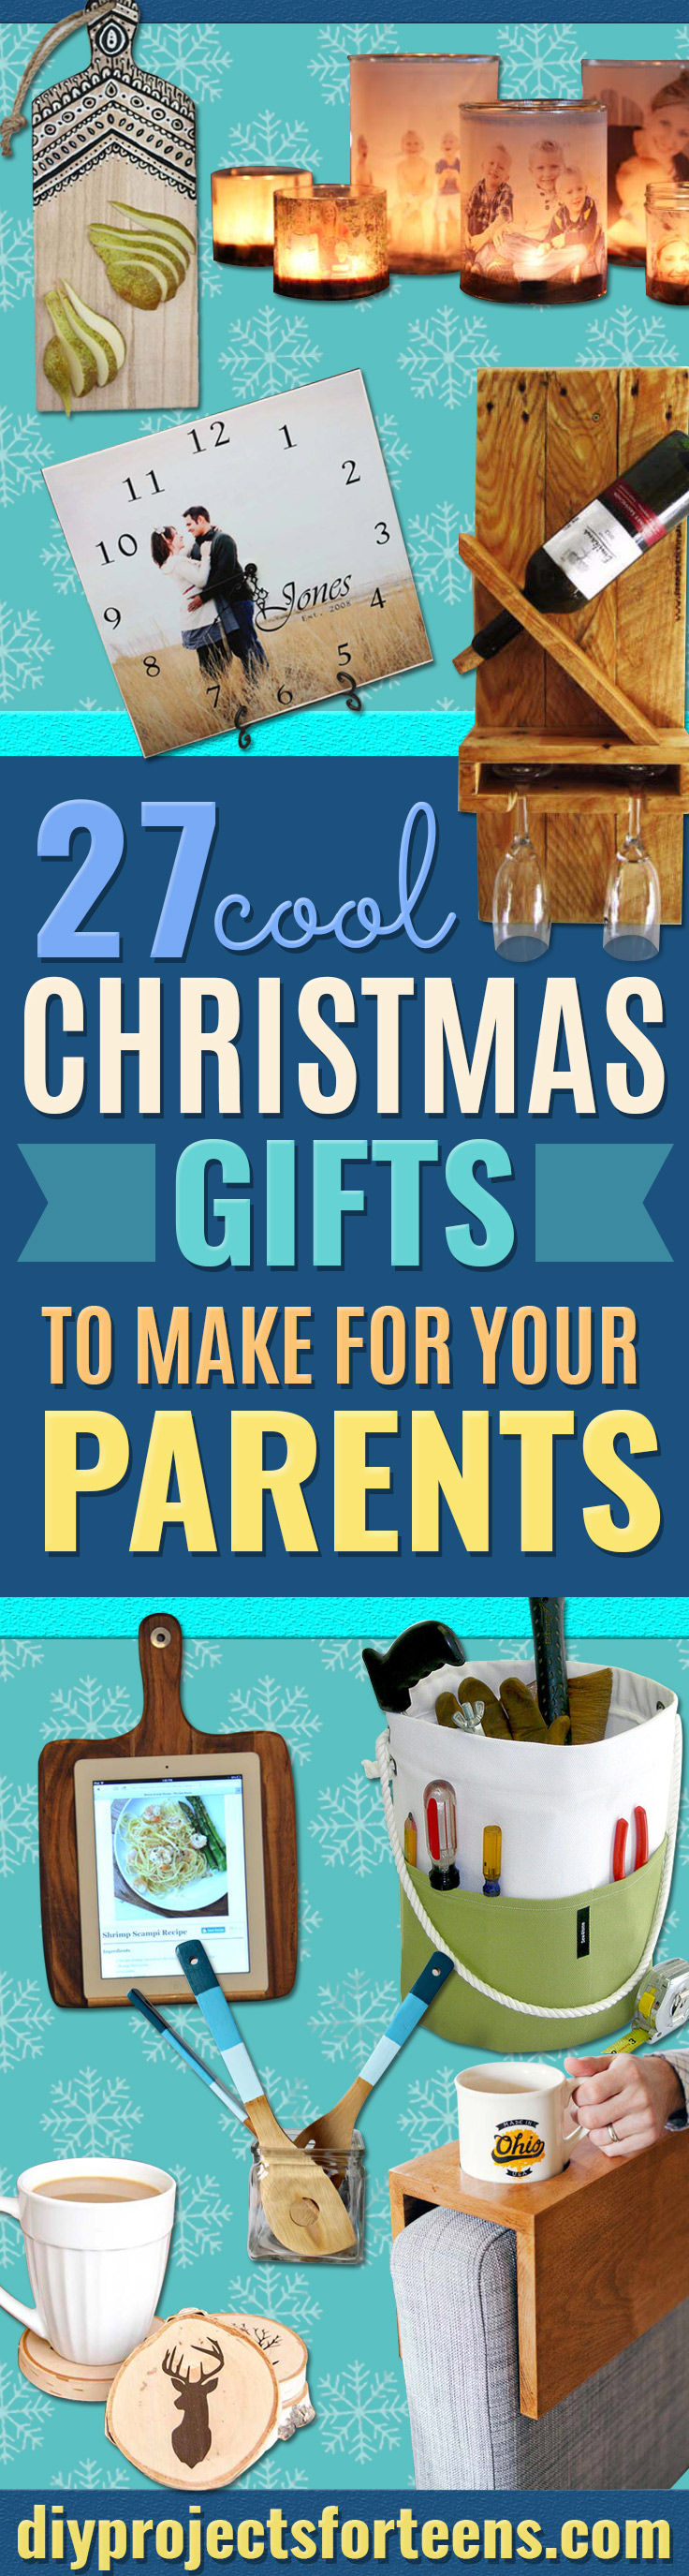 DIY Christmas Presents To Make For Parents - Cute Easy and Cheap Crafts and Gift  sc 1 st  DIY Projects for Teens & Cool Christmas Gifts To Make For Your Parents